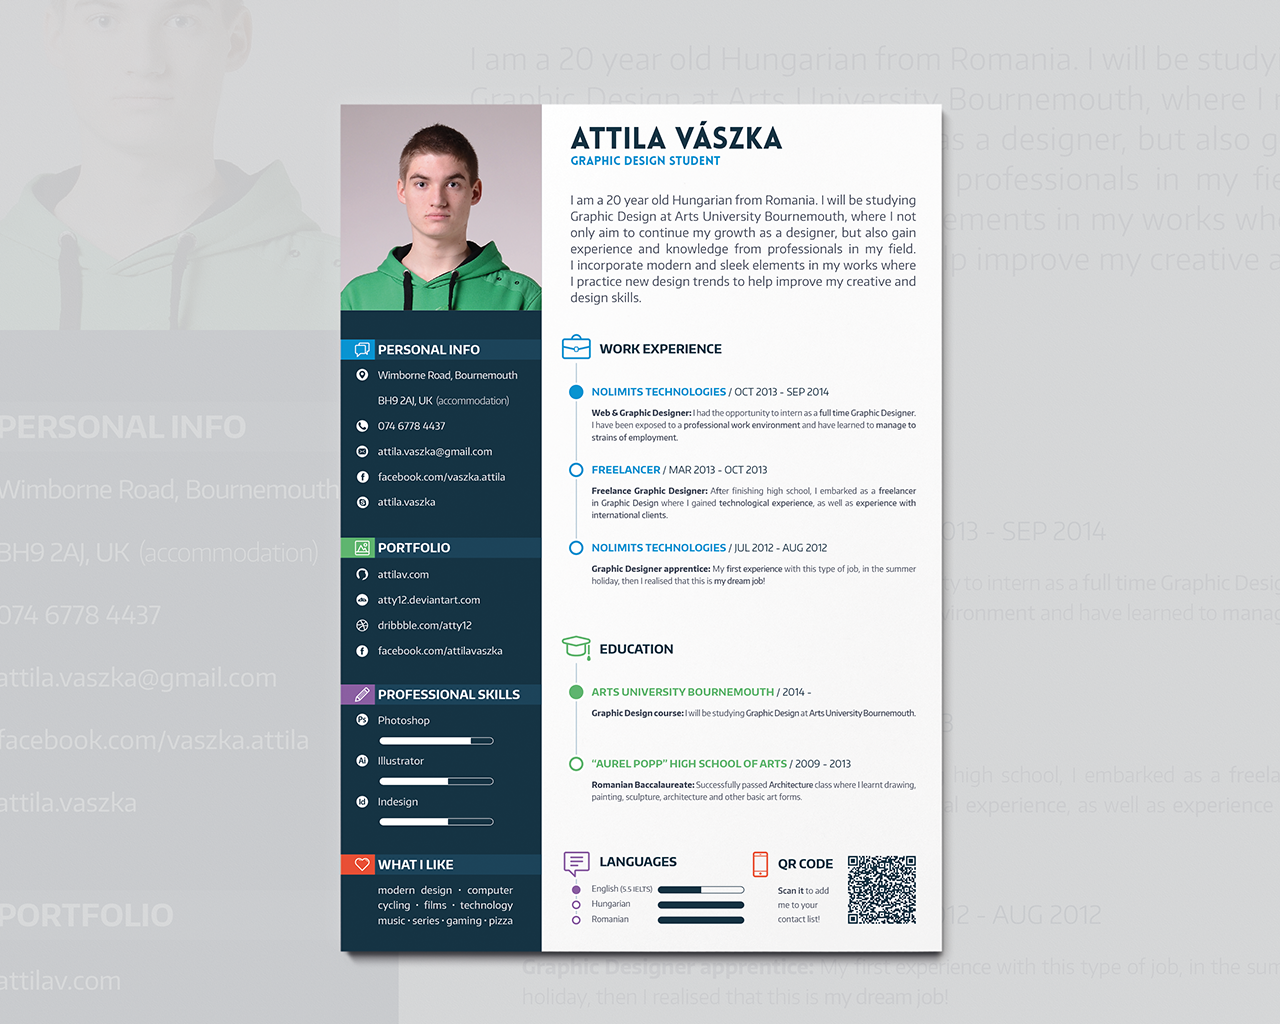 resume_design_by_atty12 d7xpicd